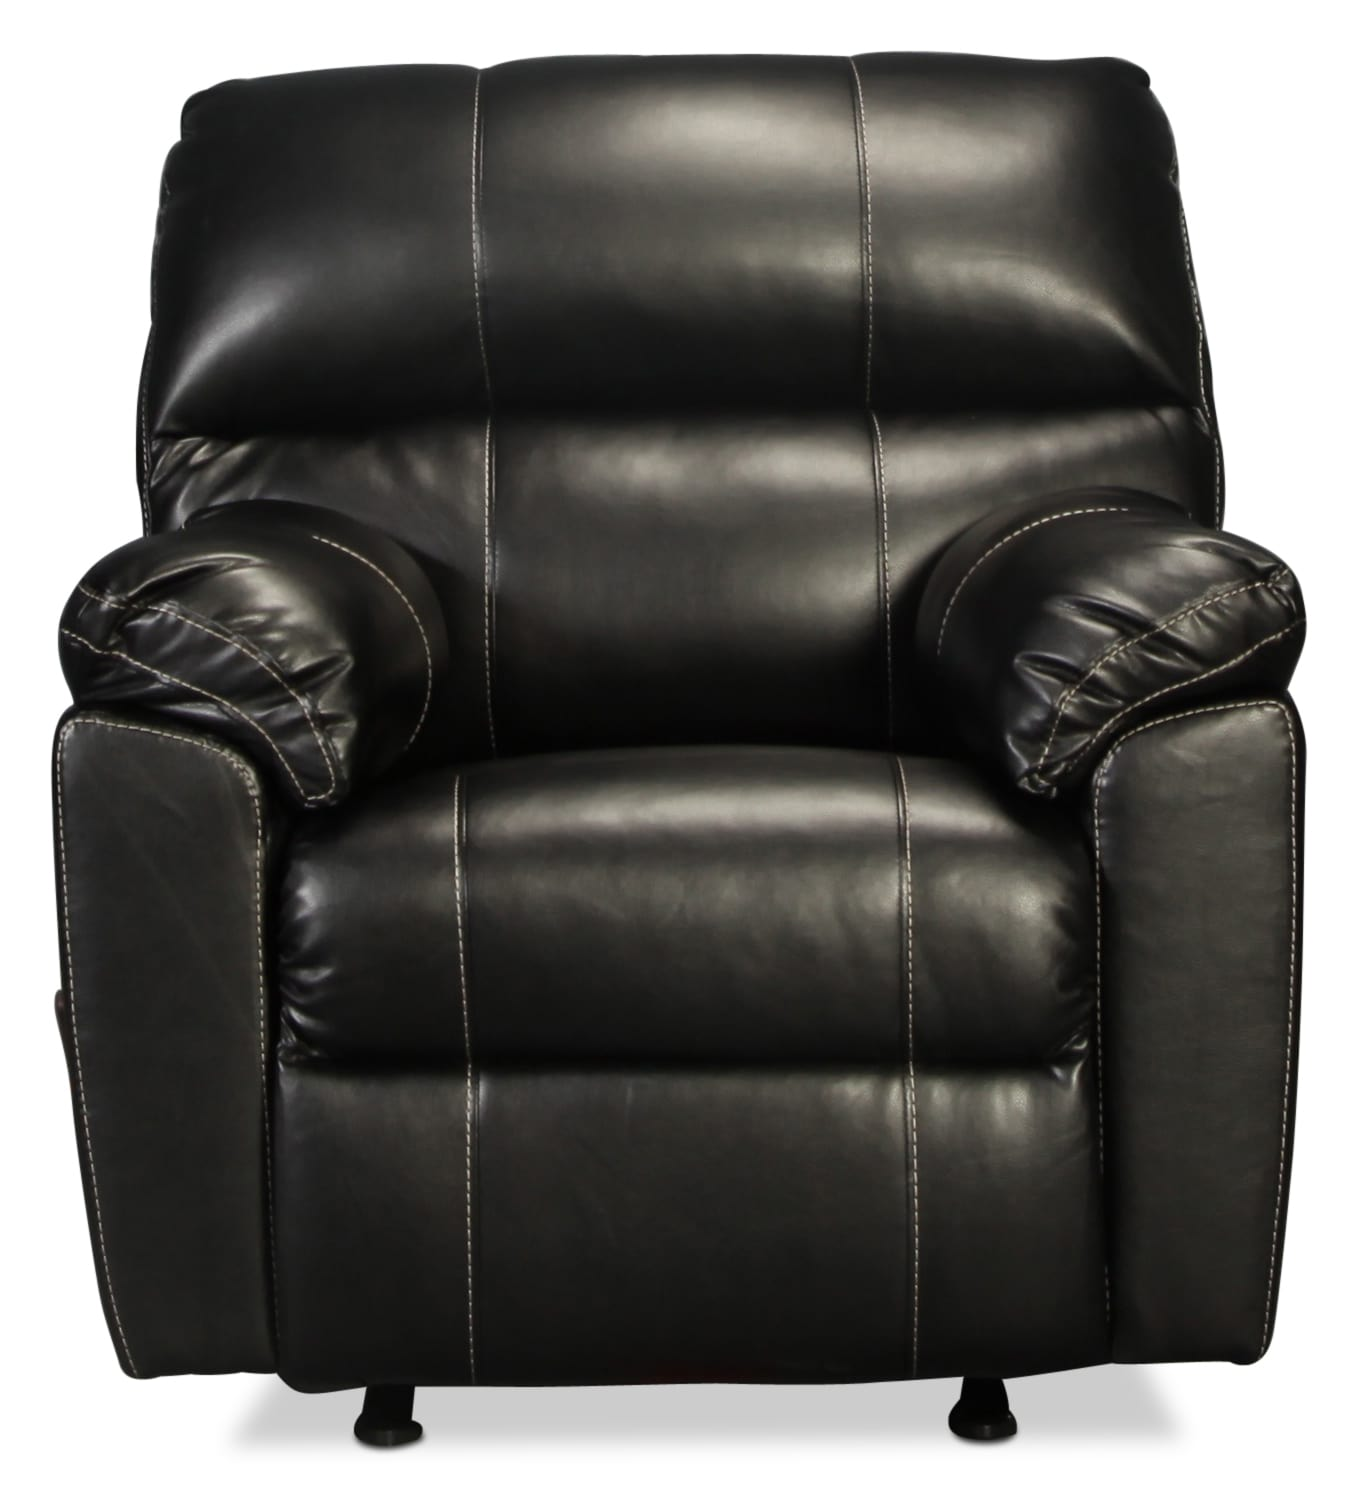 Rigley Rocker Recliner - Black